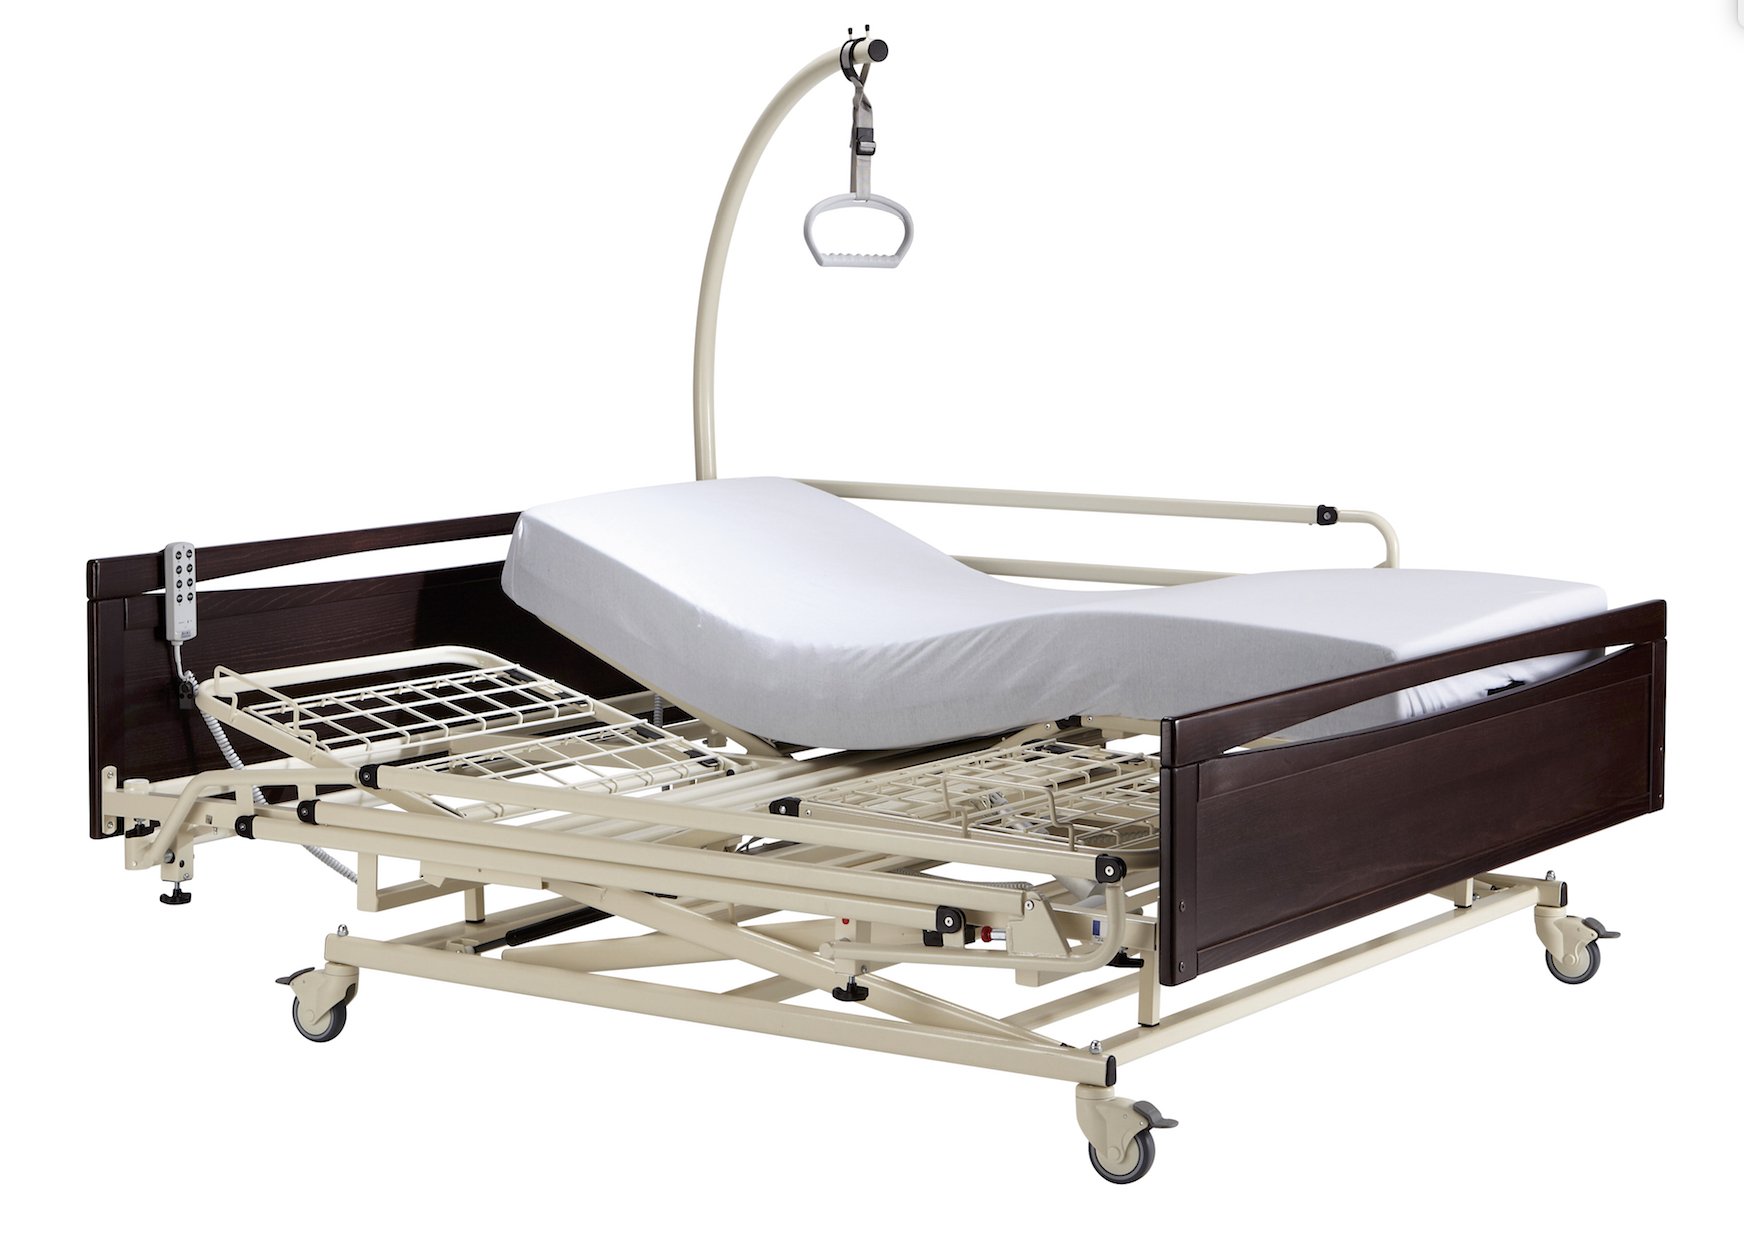 Adjustable Beds That Raise And Lower : Twin altera height adjustable profiling bed living made easy